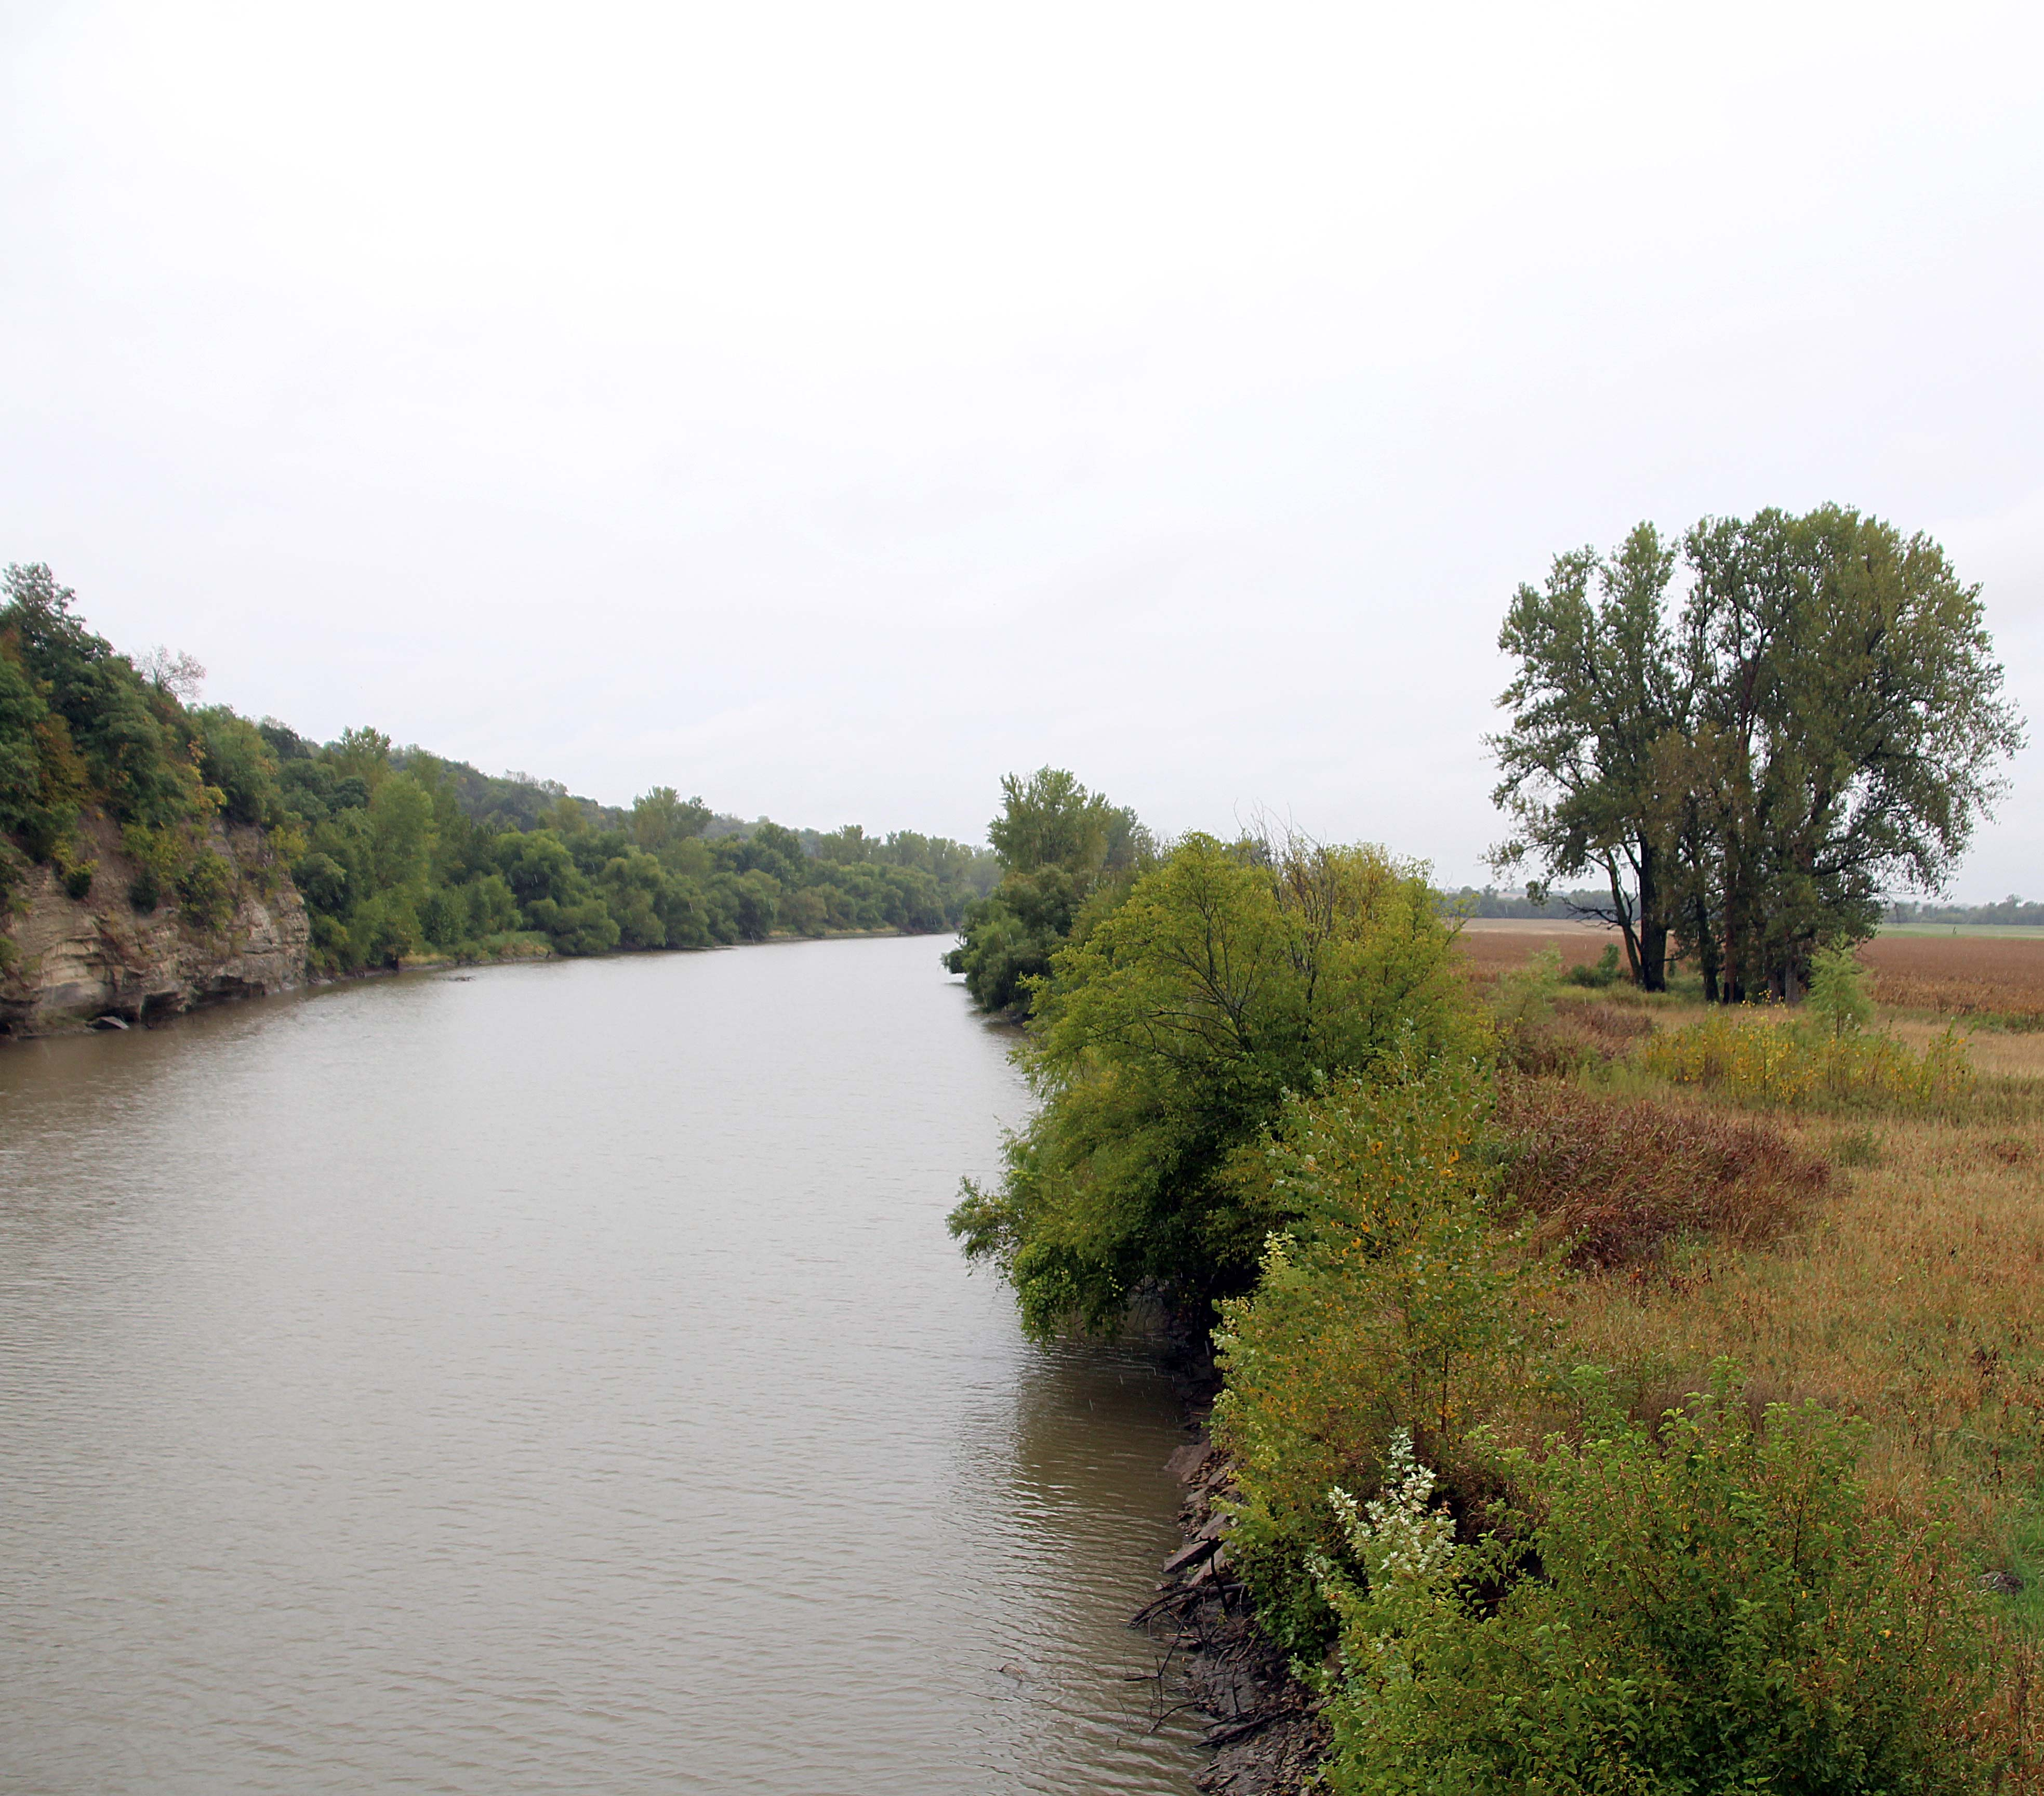 The Great Nemaha River on the Sac and Fox tribe's reservation.